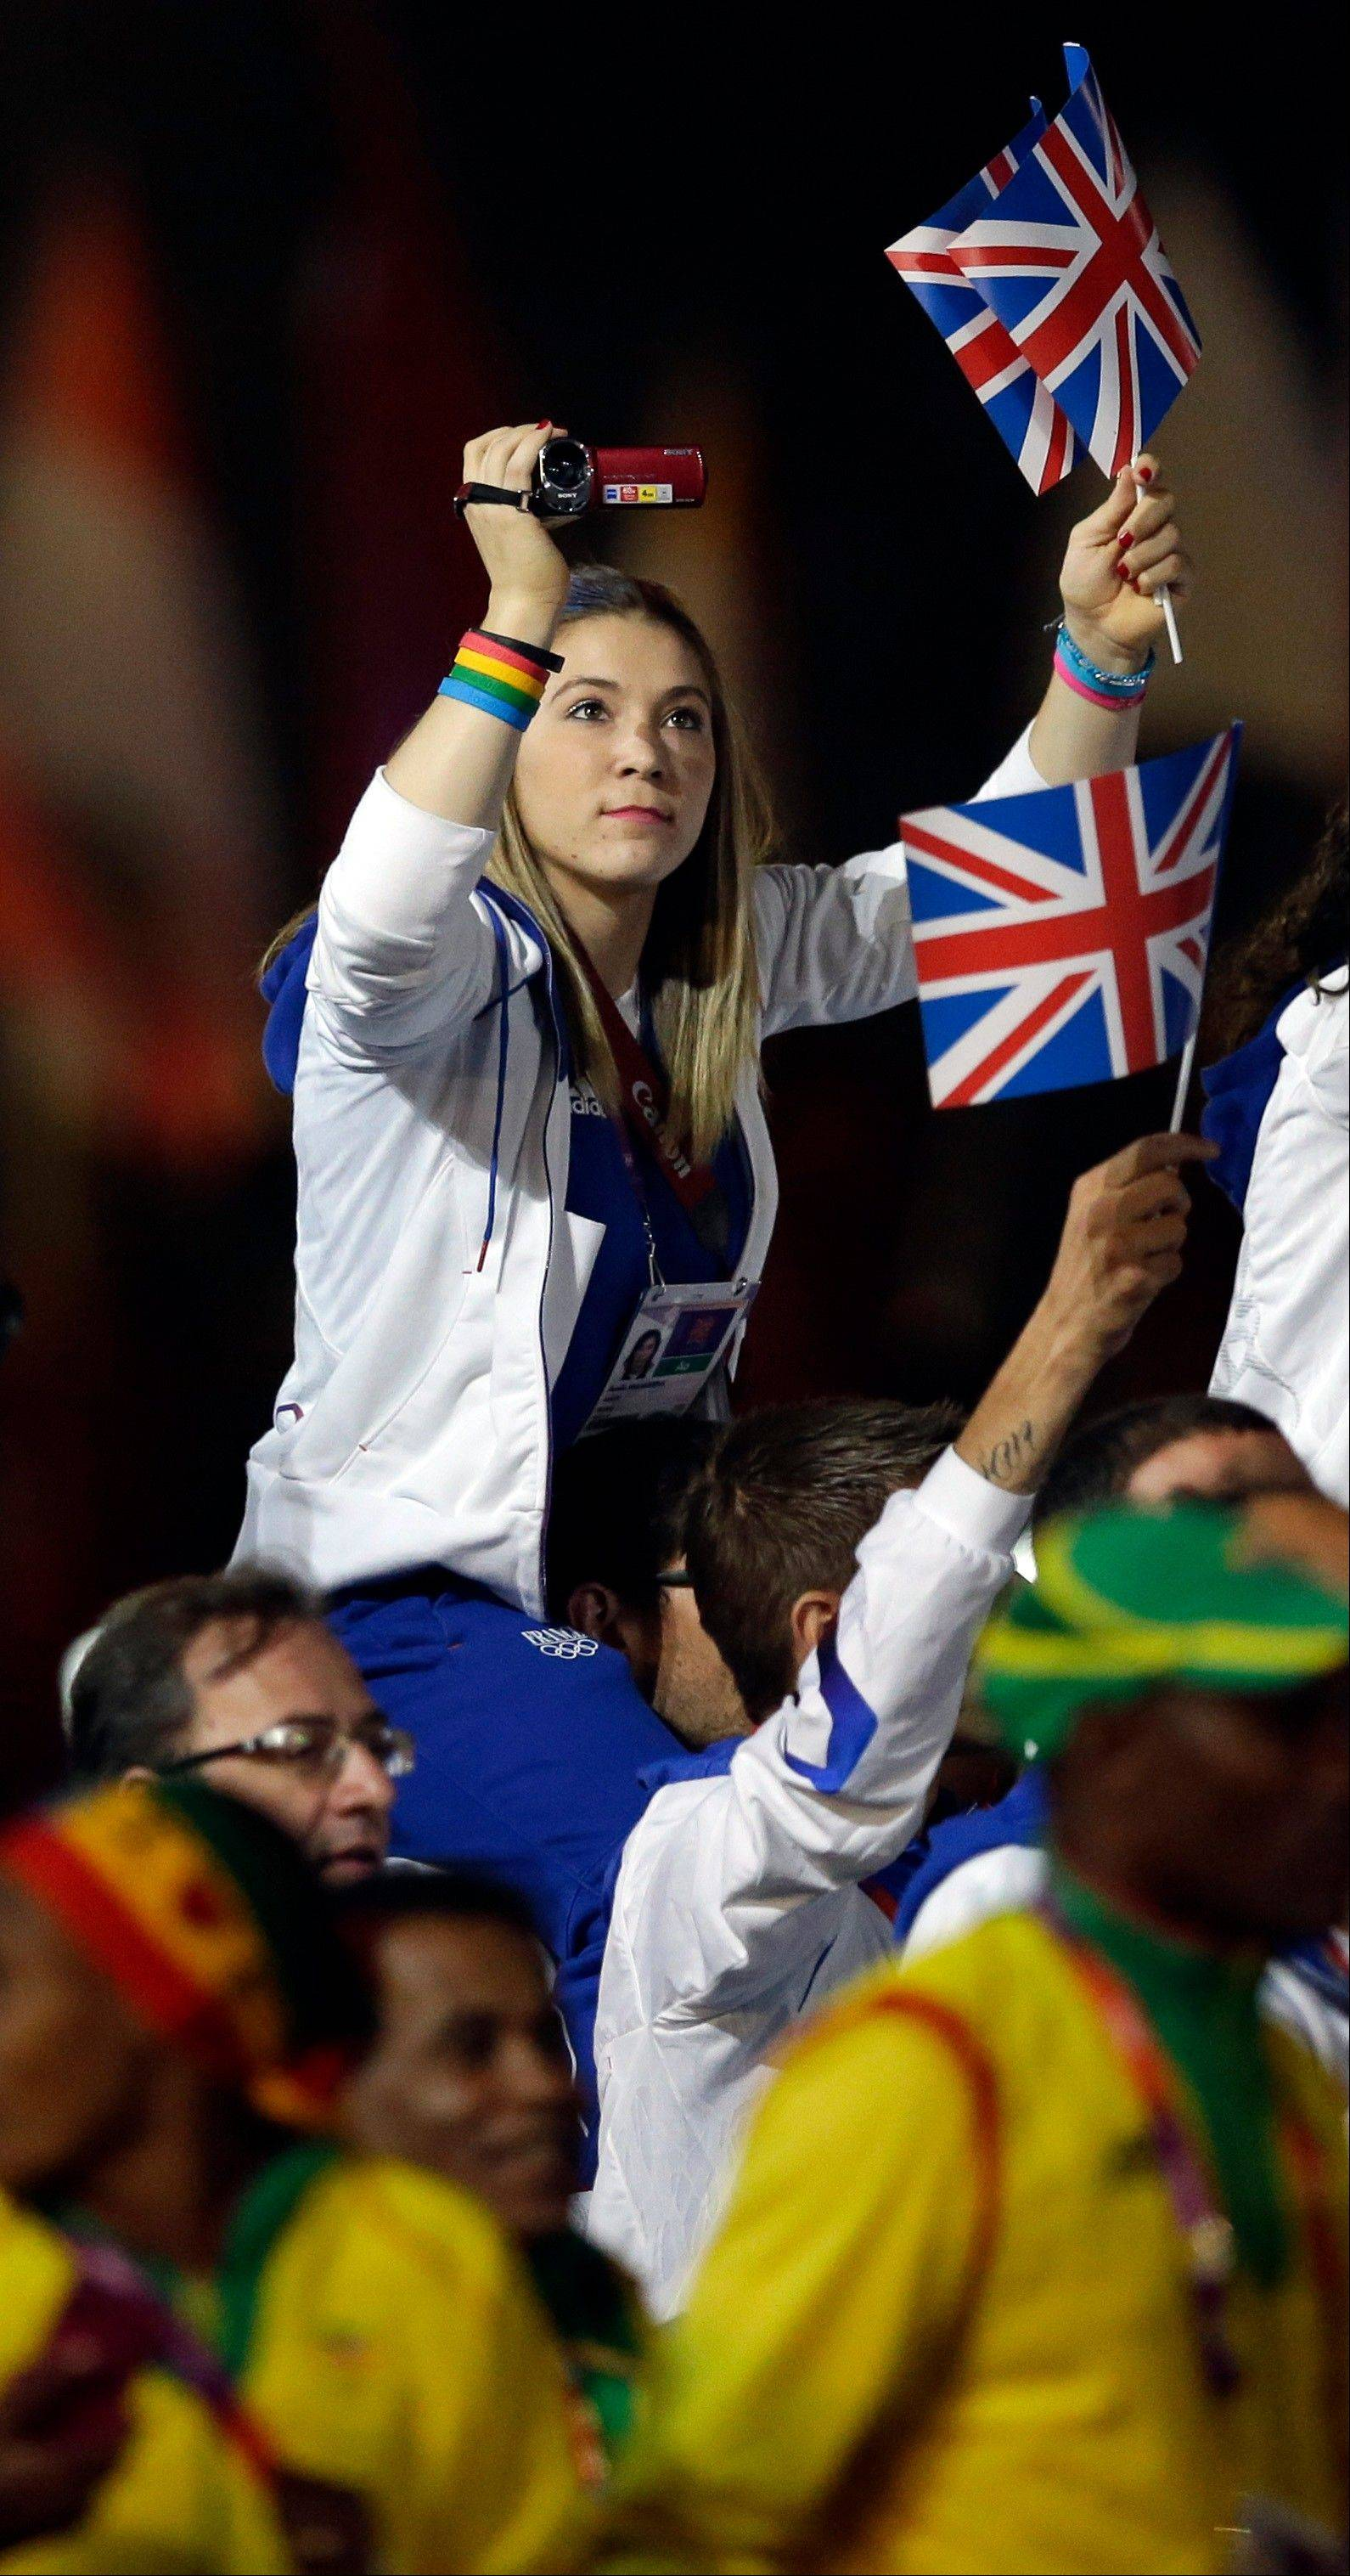 A member of the British team takes pictures during the Closing Ceremony at the 2012 Summer Olympics.